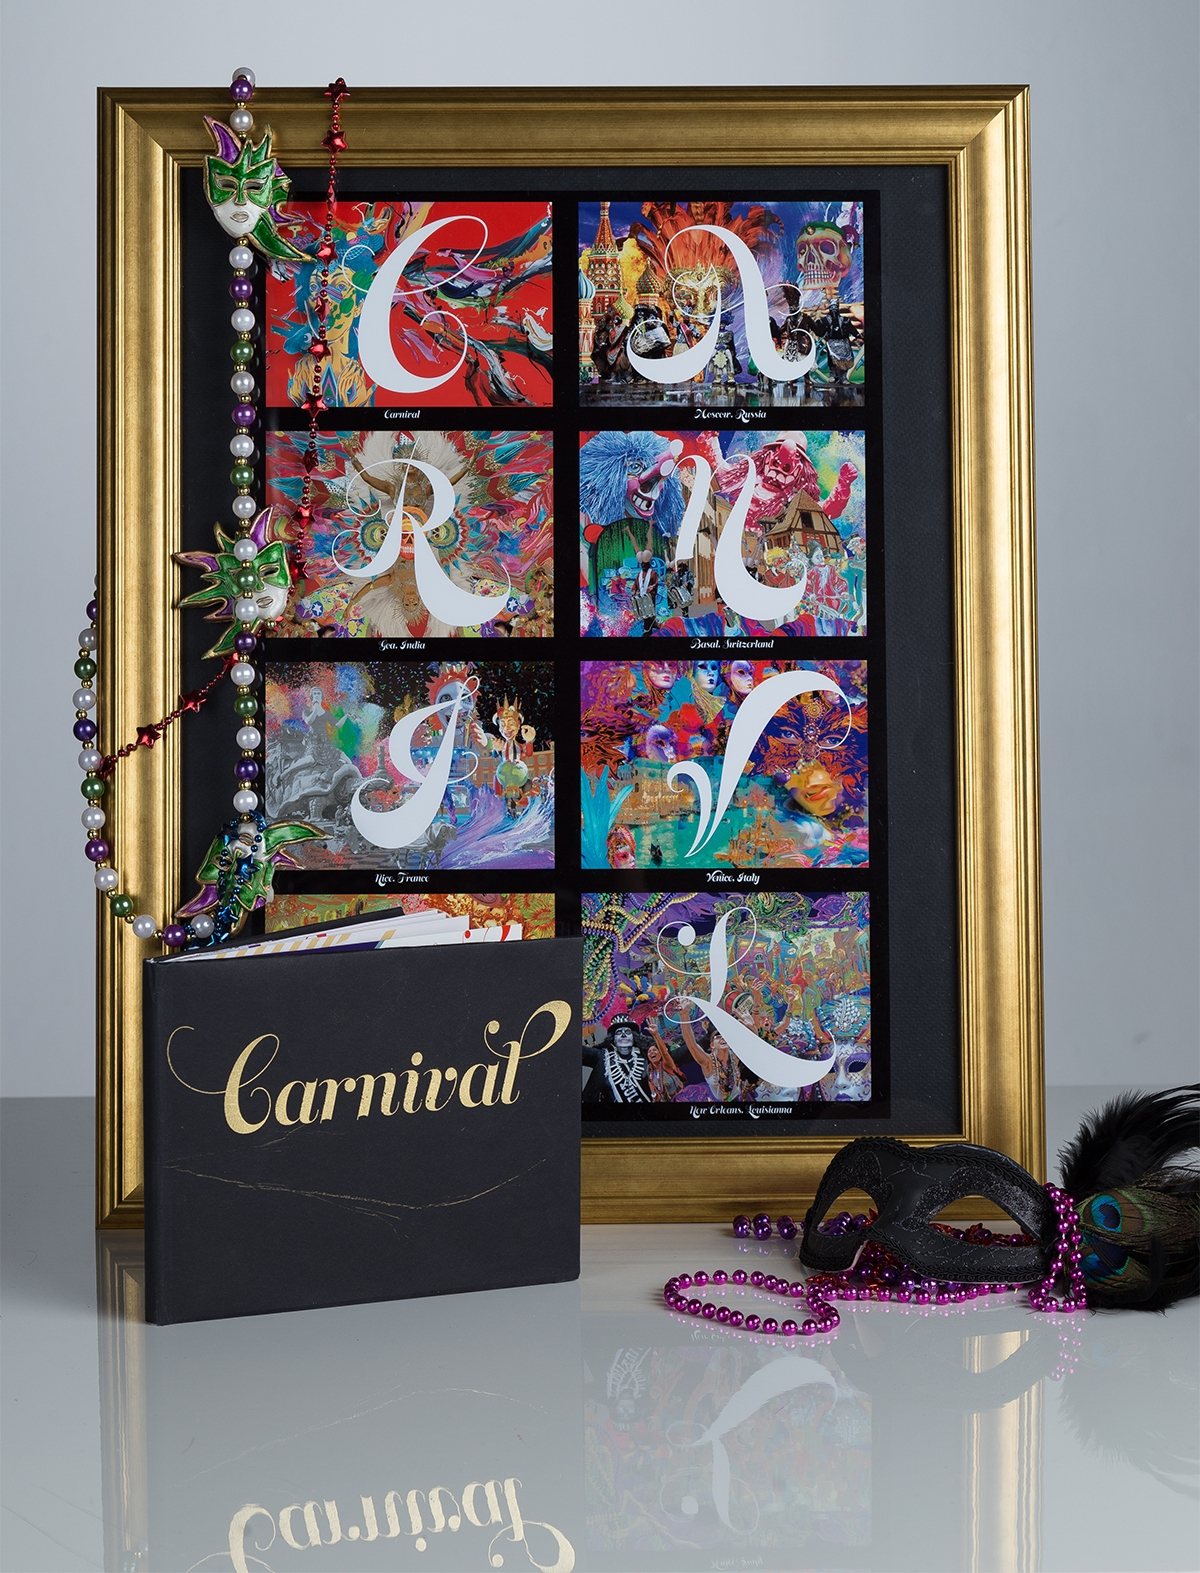 carnival_poster and book.jpg